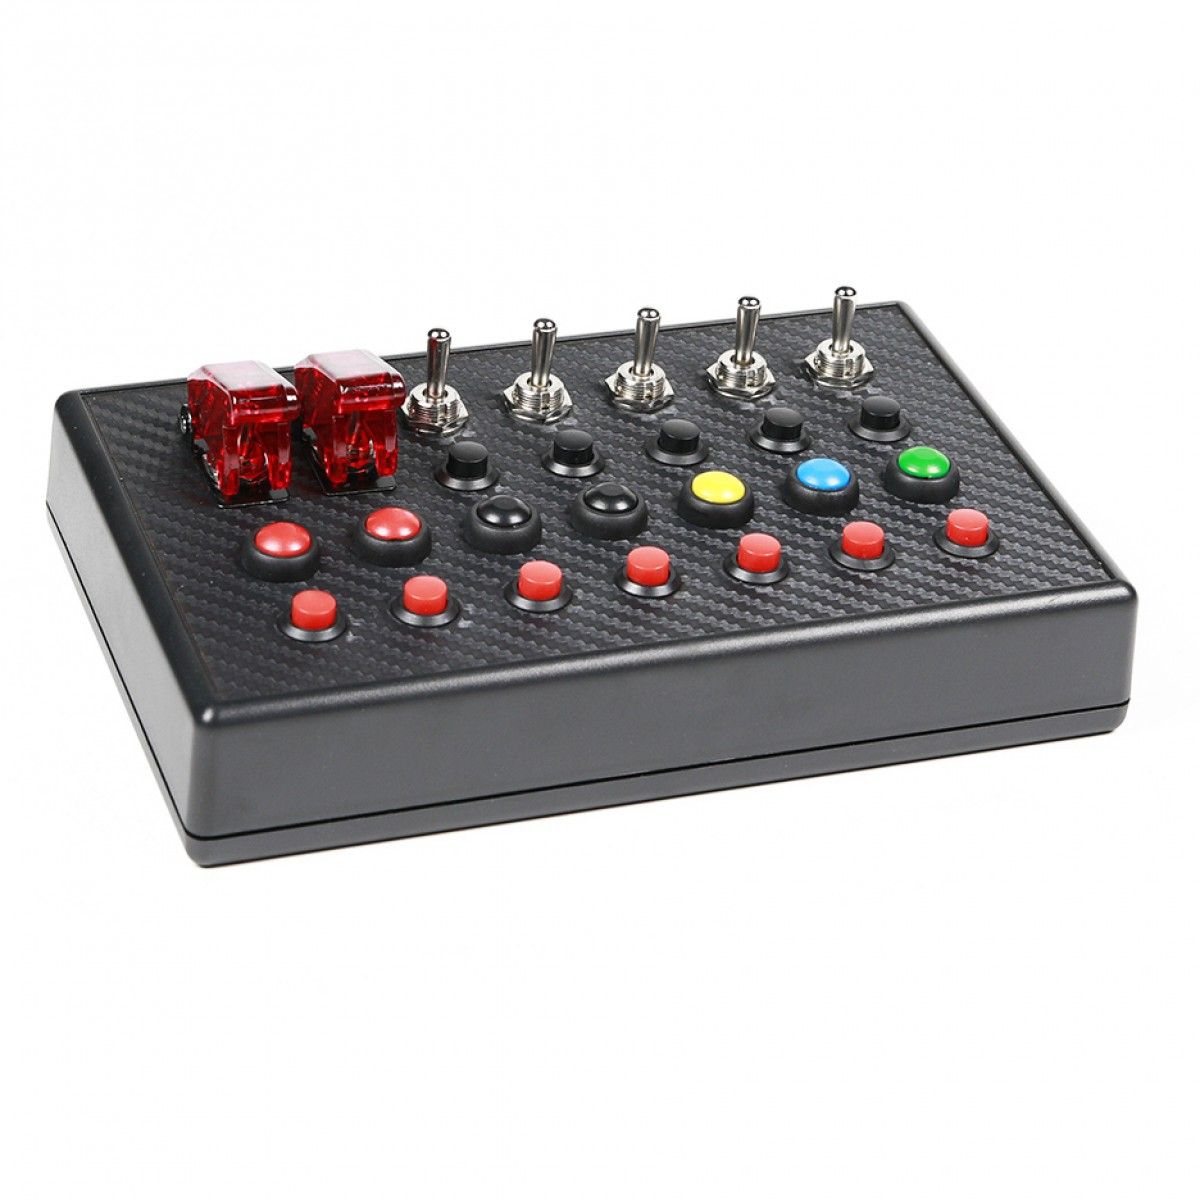 DSD Track Boss button box